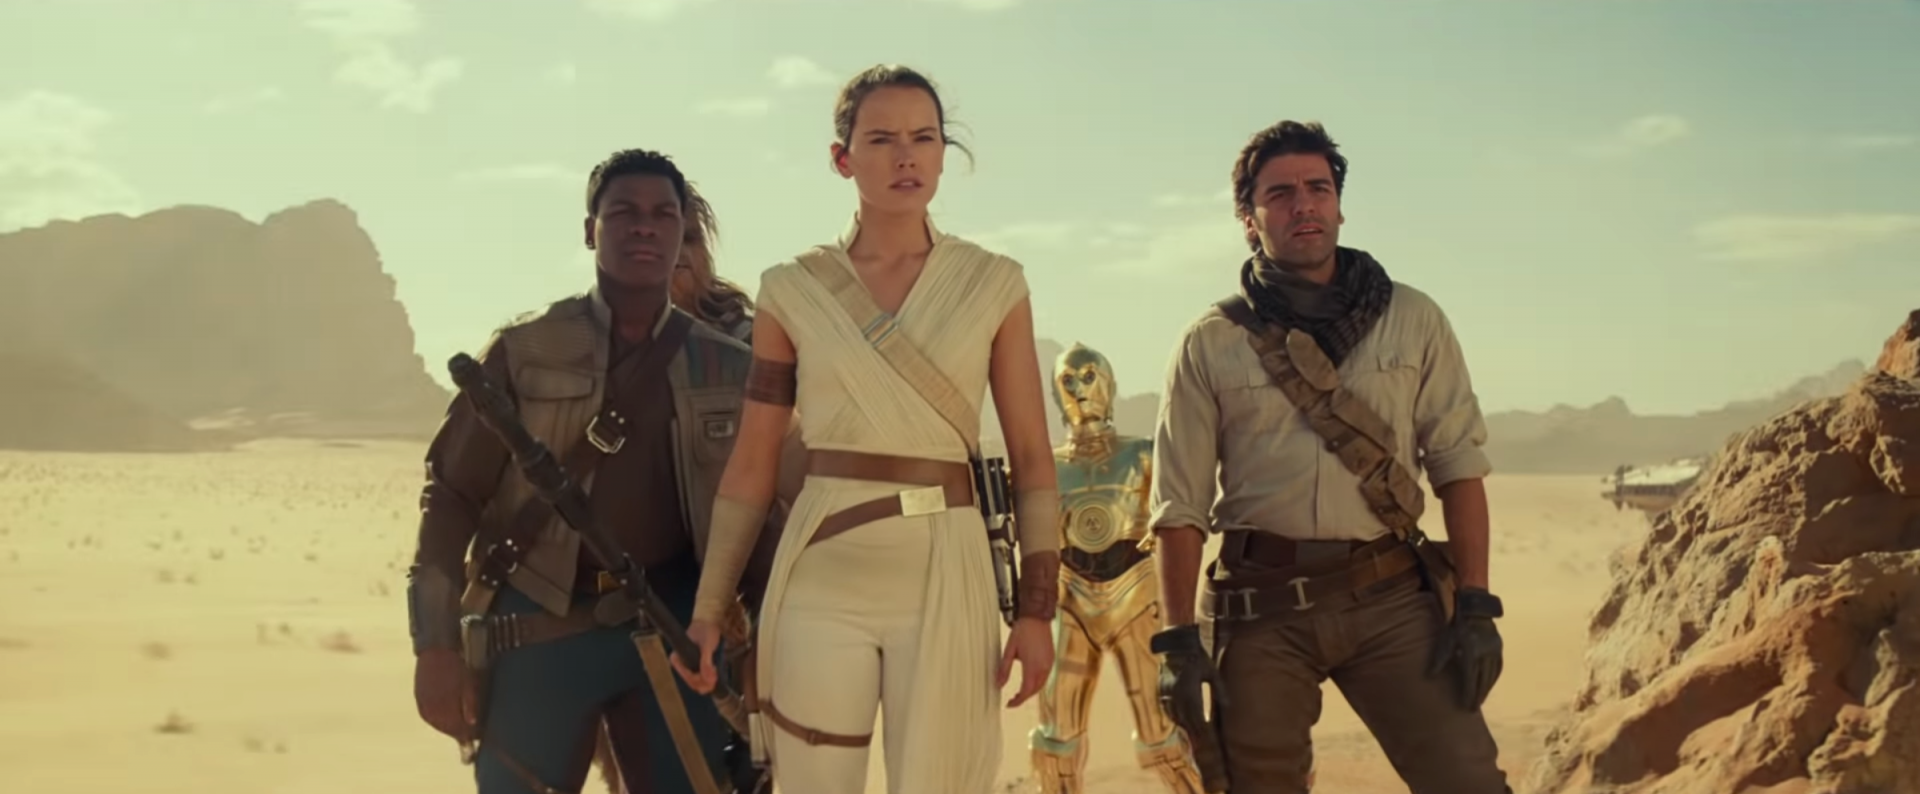 "rise of skywalker finn rey poe desert - Crítica de ""Star Wars - A Ascensão Skywalker"", de J.J. Abrams"